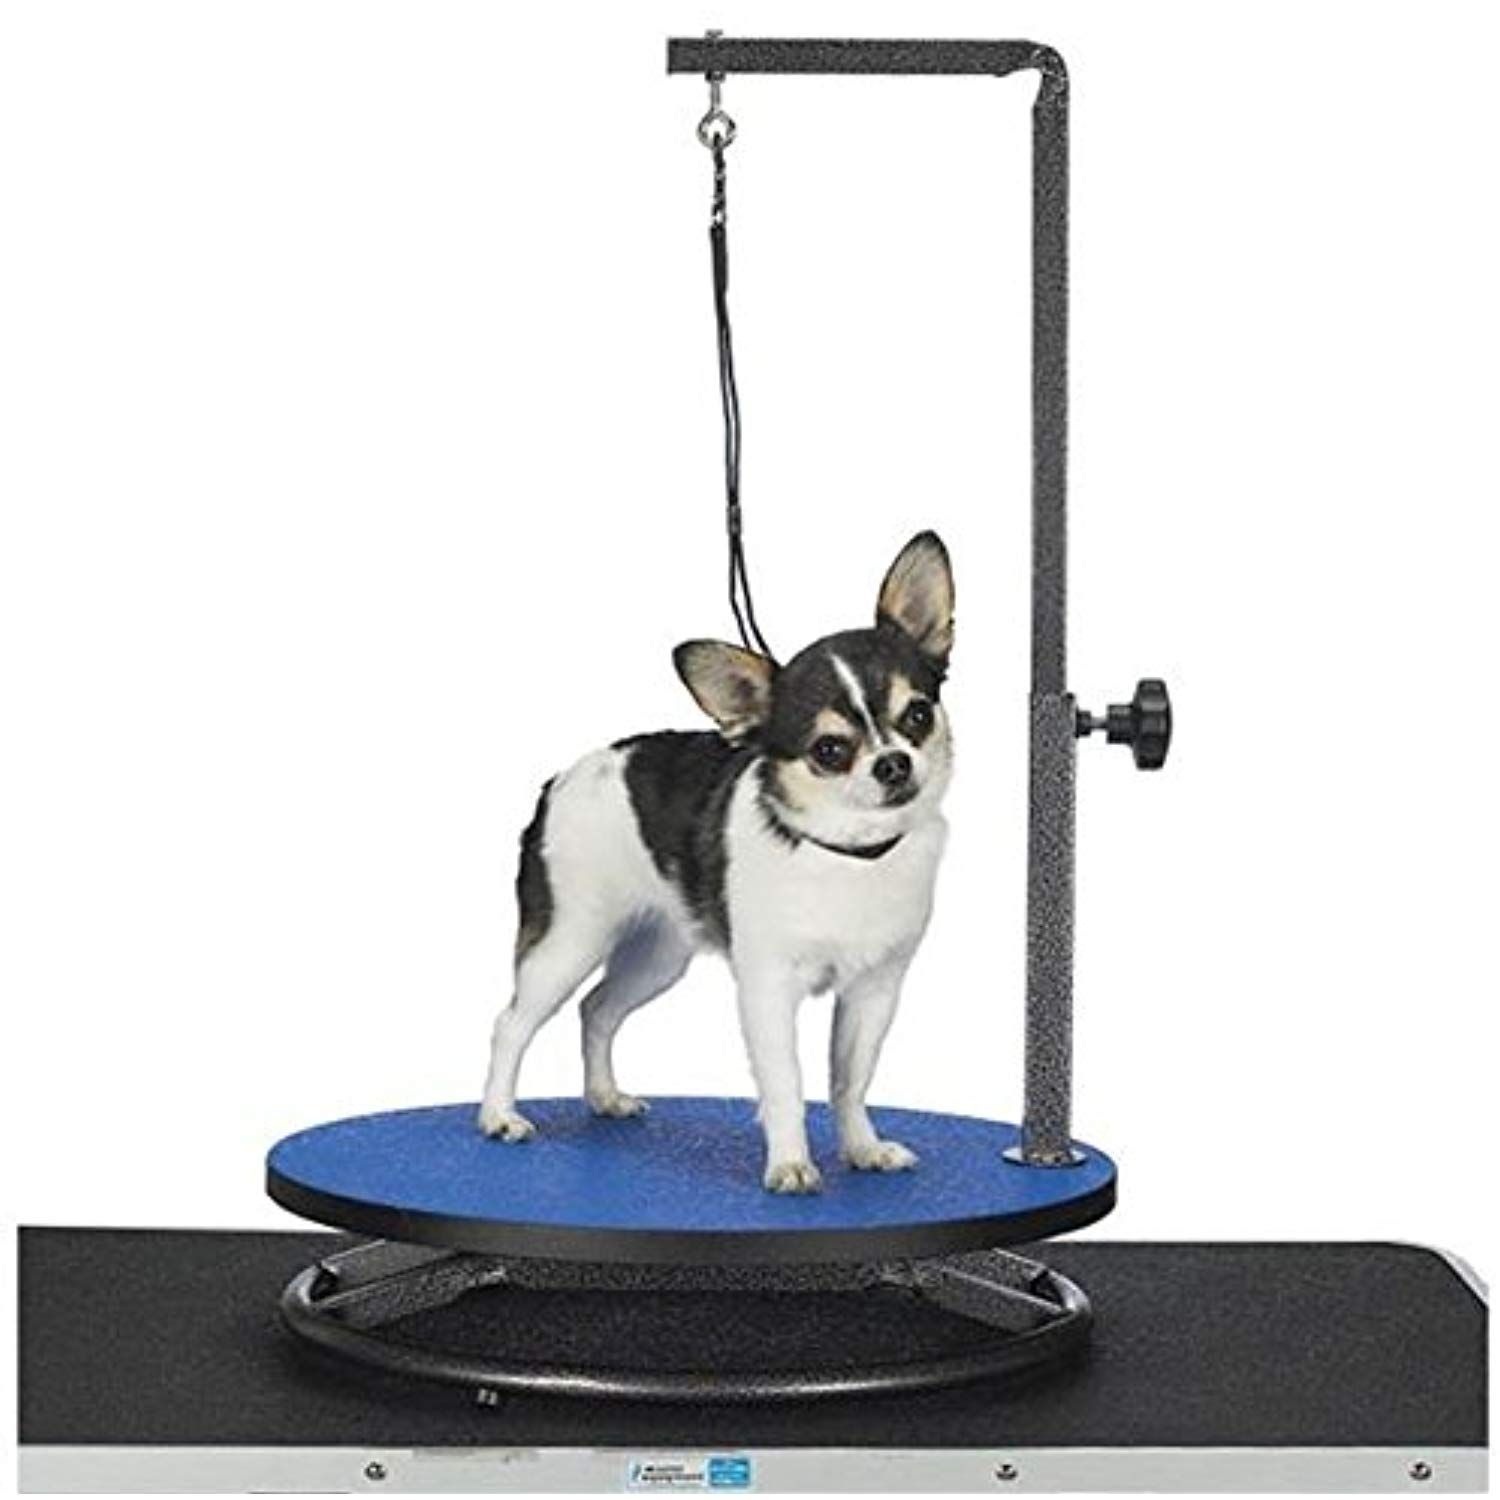 Master Equipment Small Pet Grooming Table, Blue You can